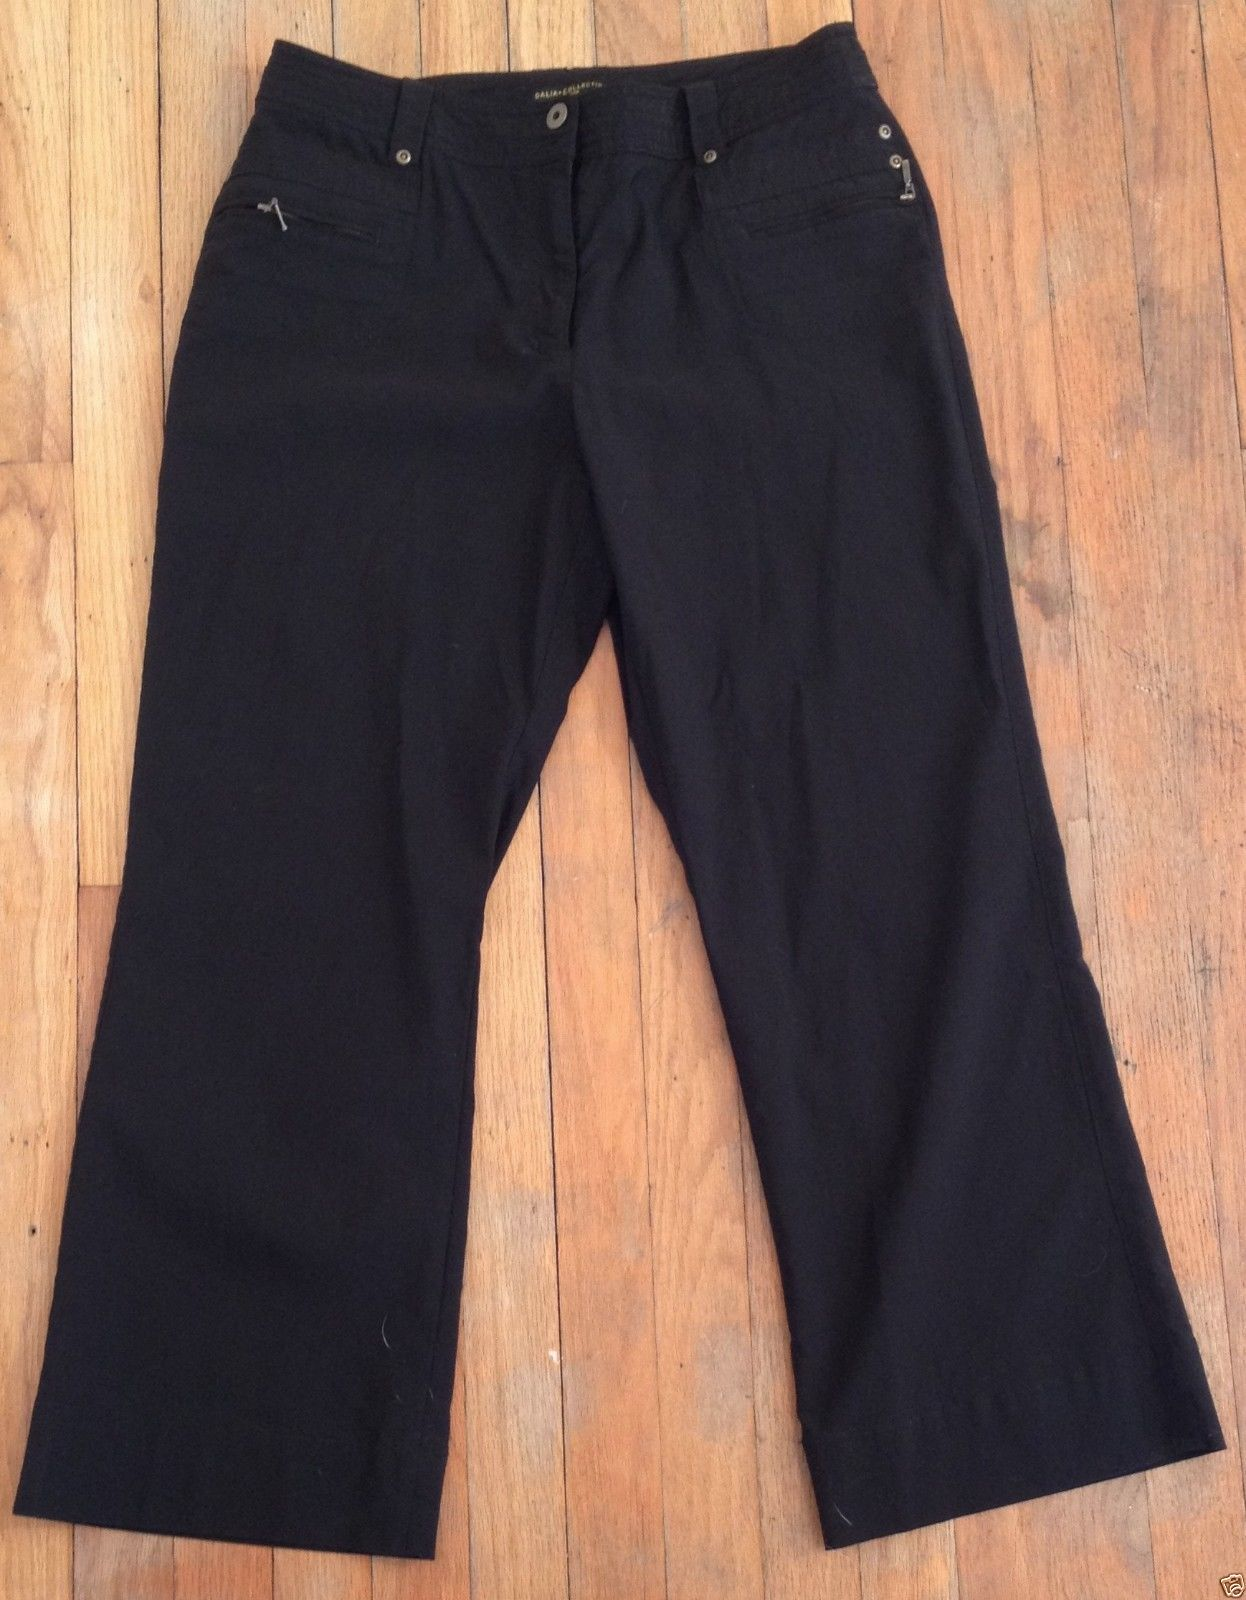 Dalia Collection Black Stretch Petite Dress Pants Slacks Stretch 12P 32x27 | eBay #RecycledCouture #Fashion #eBay